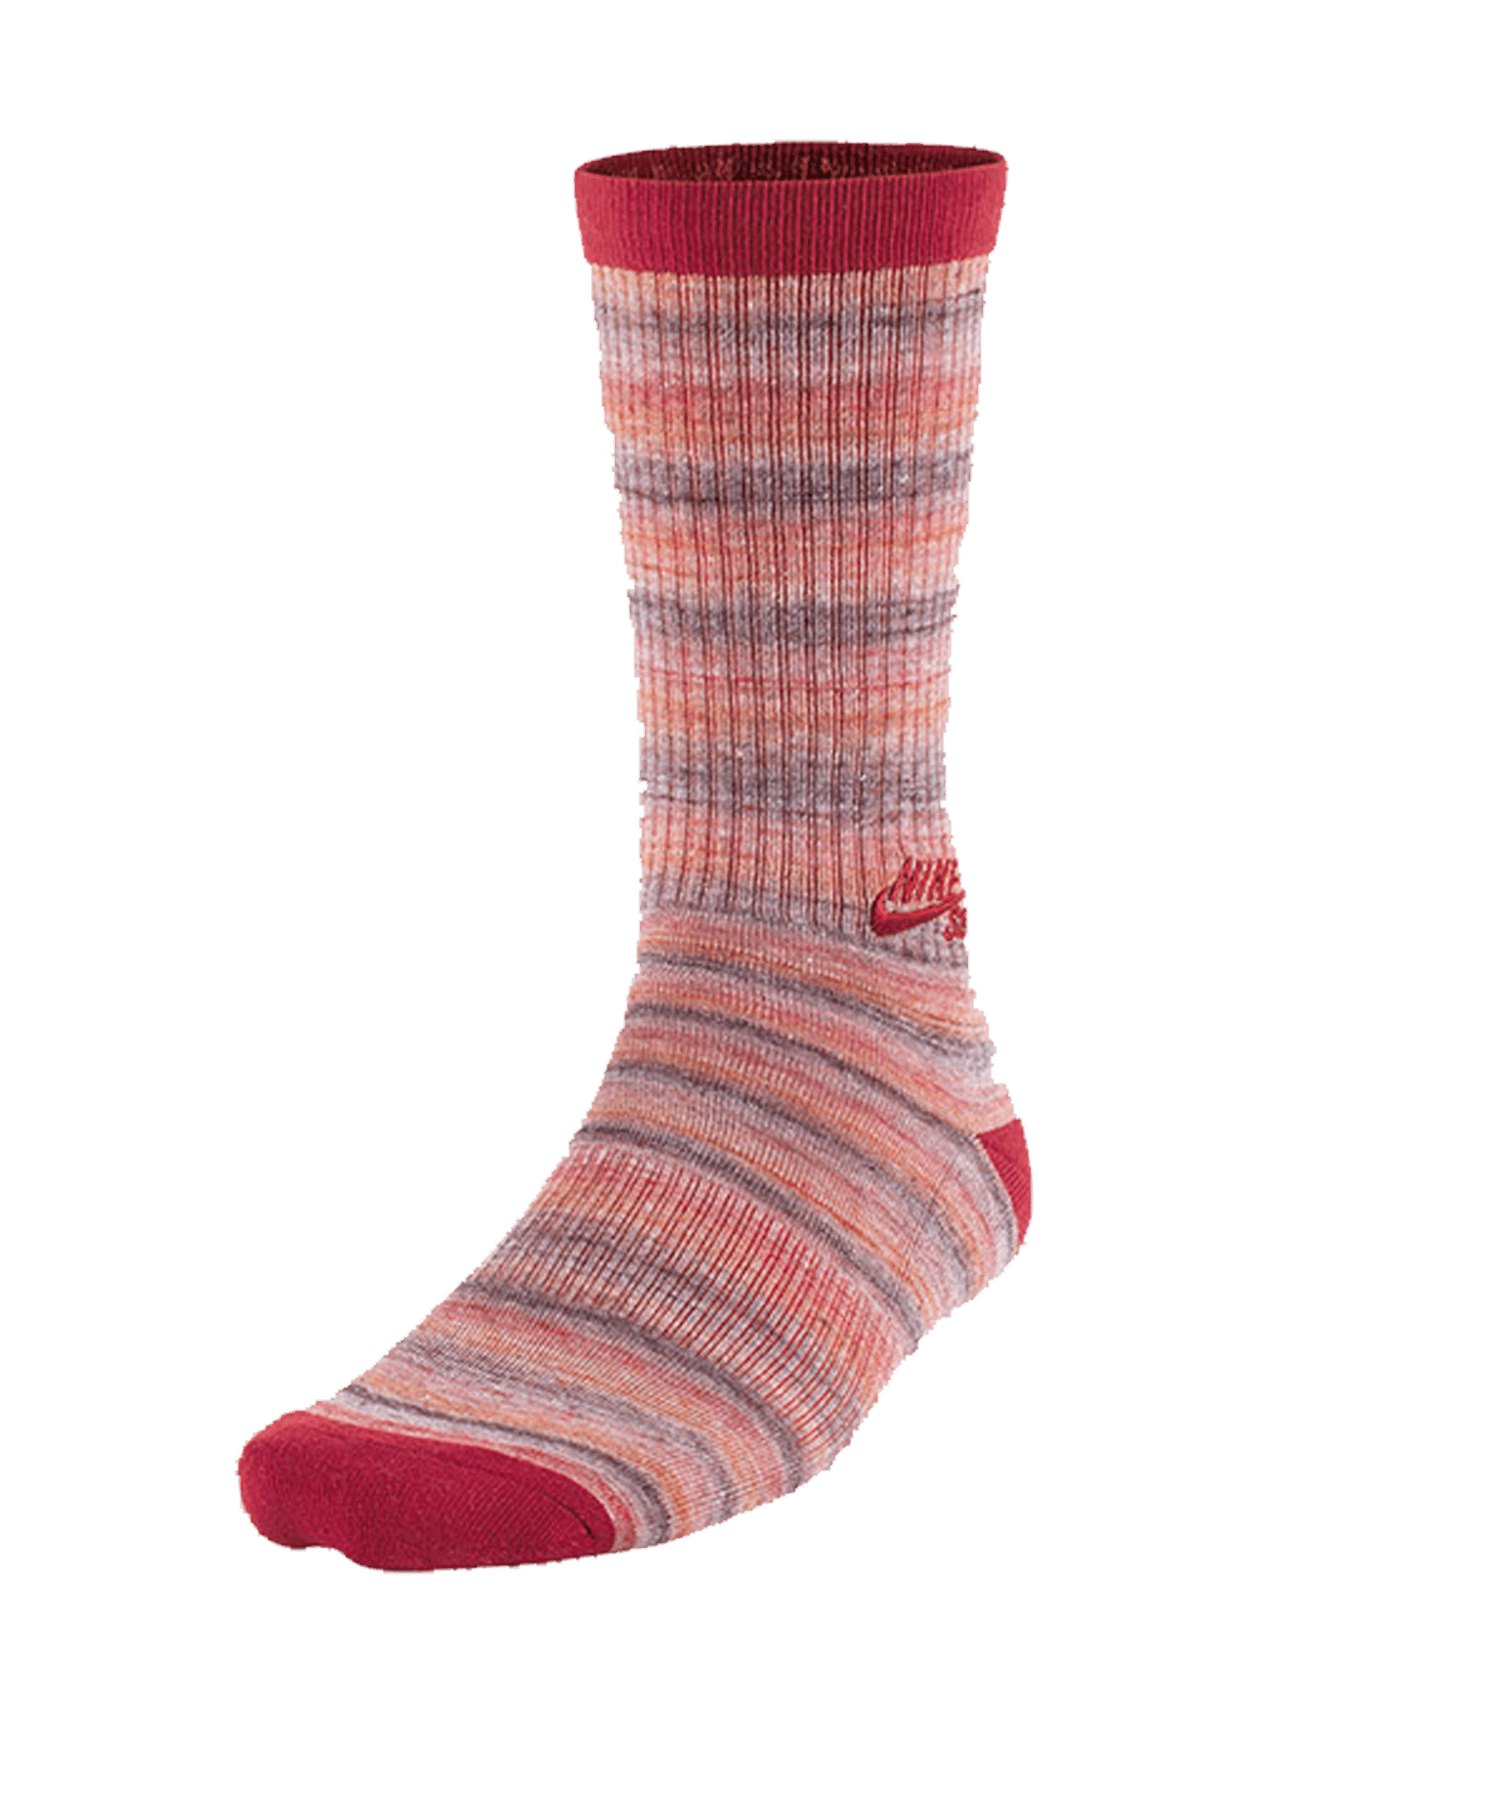 Nike Dri-FIT Space Crew Socken F668 - rot